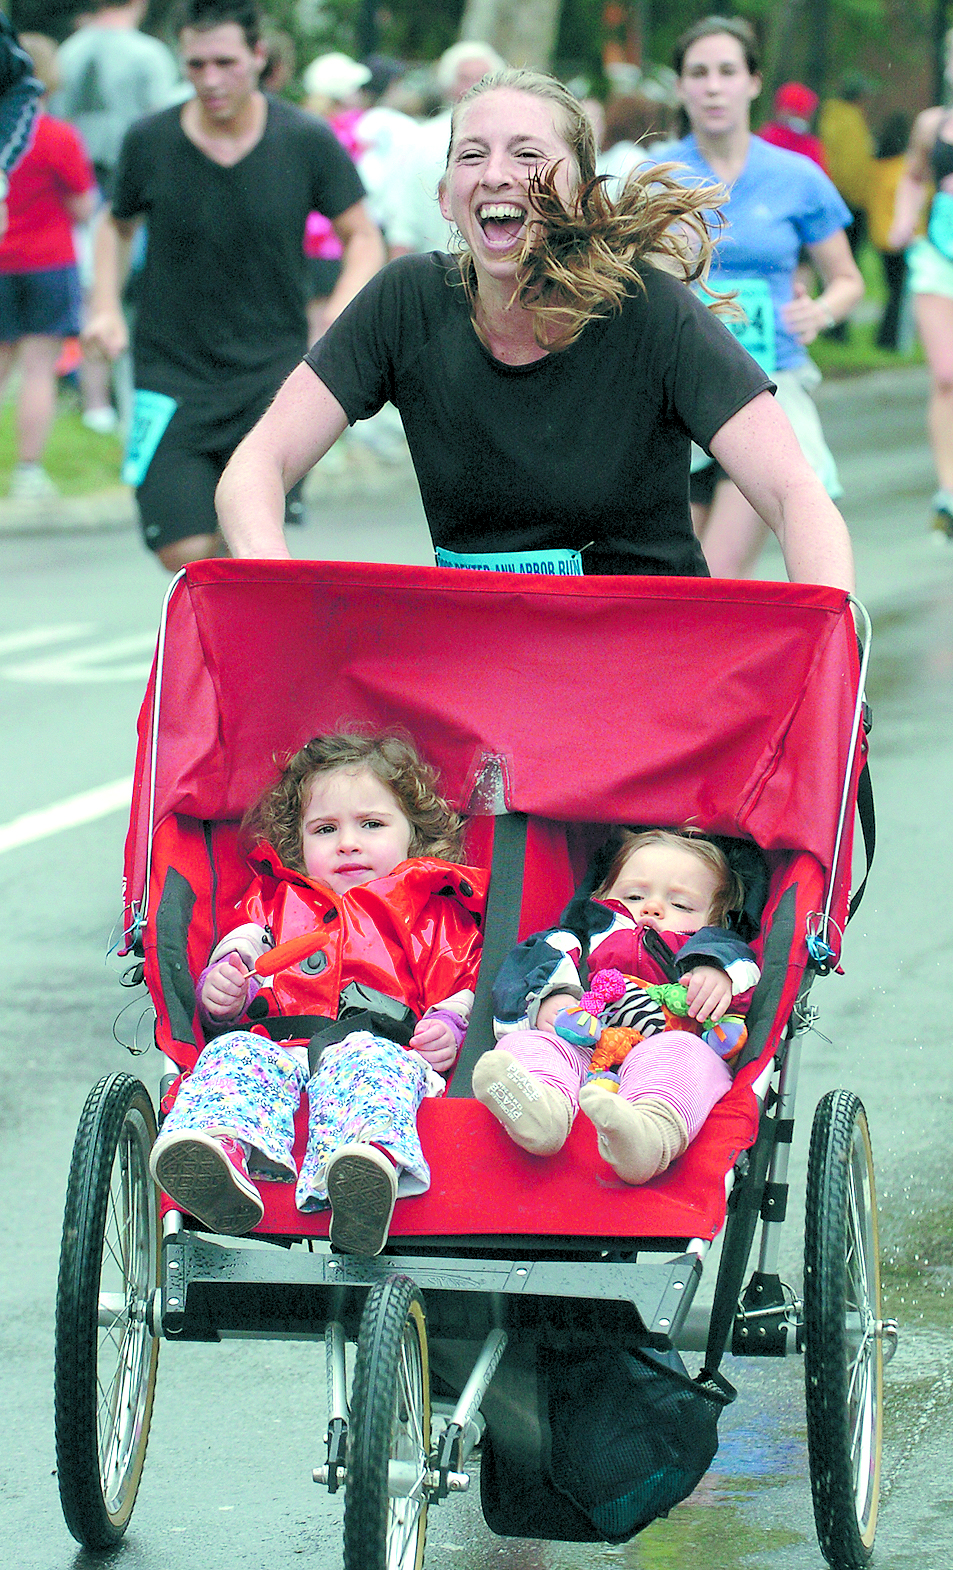 Stroller Car Race Jill Constantino With Daughters In Stroller Race In The